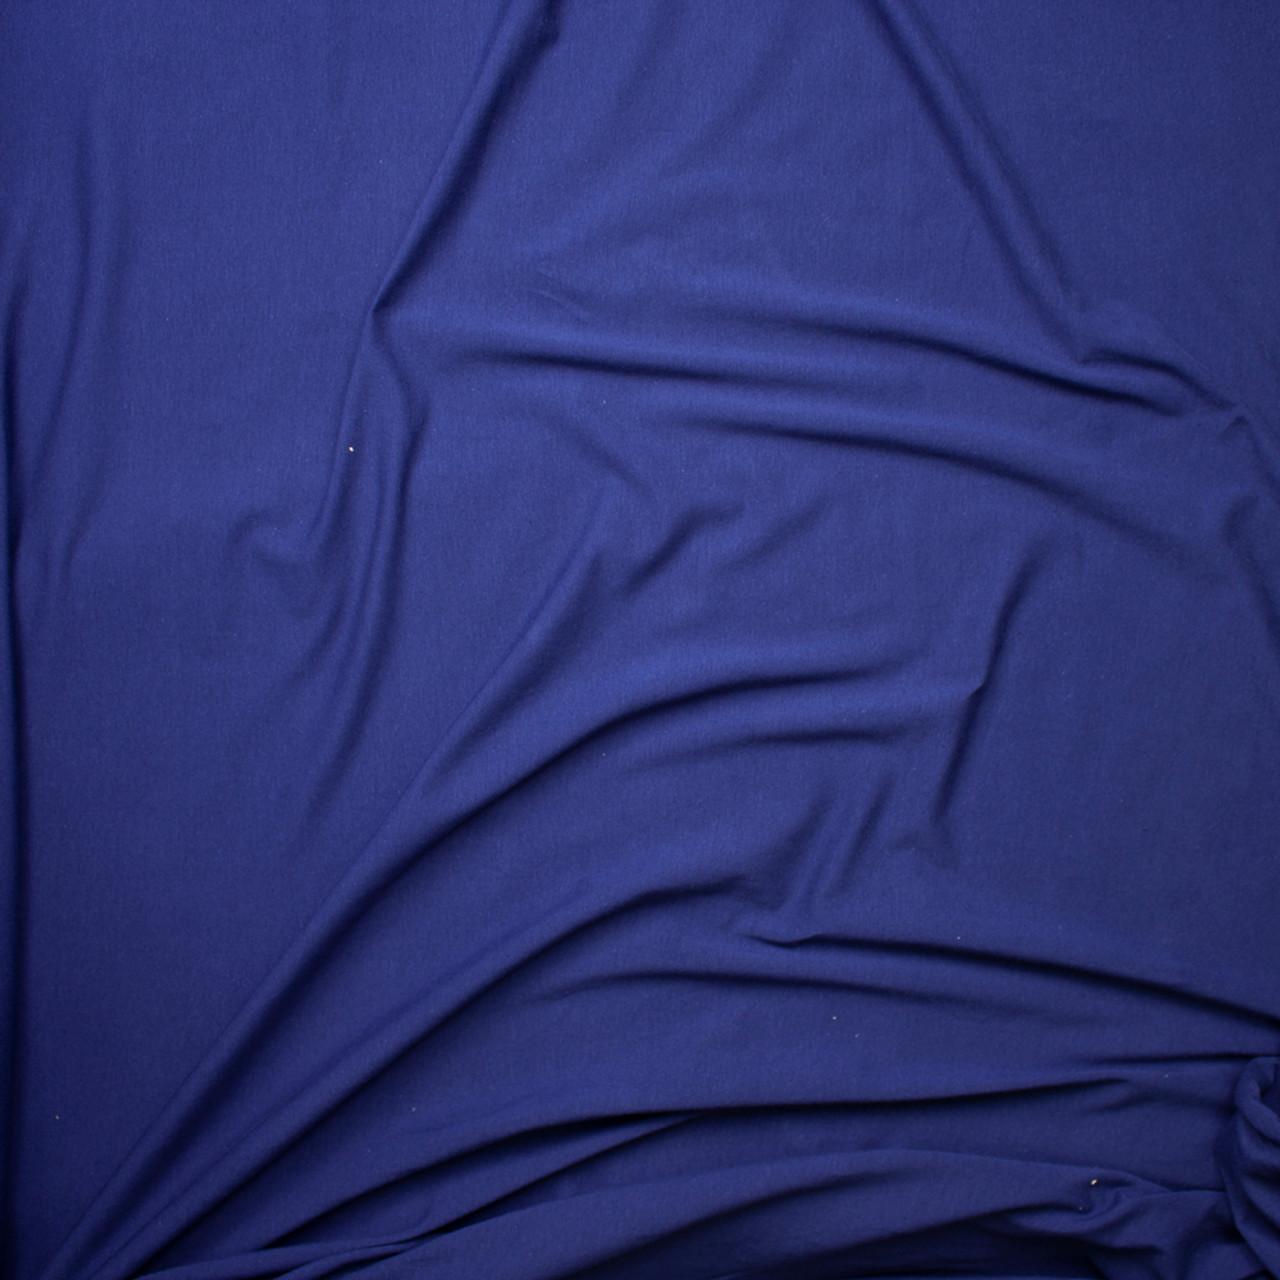 872e822fa8a ... Navy Blue Light Midweight Stretch Cotton Jersey Knit Fabric By The Yard  - Wide shot